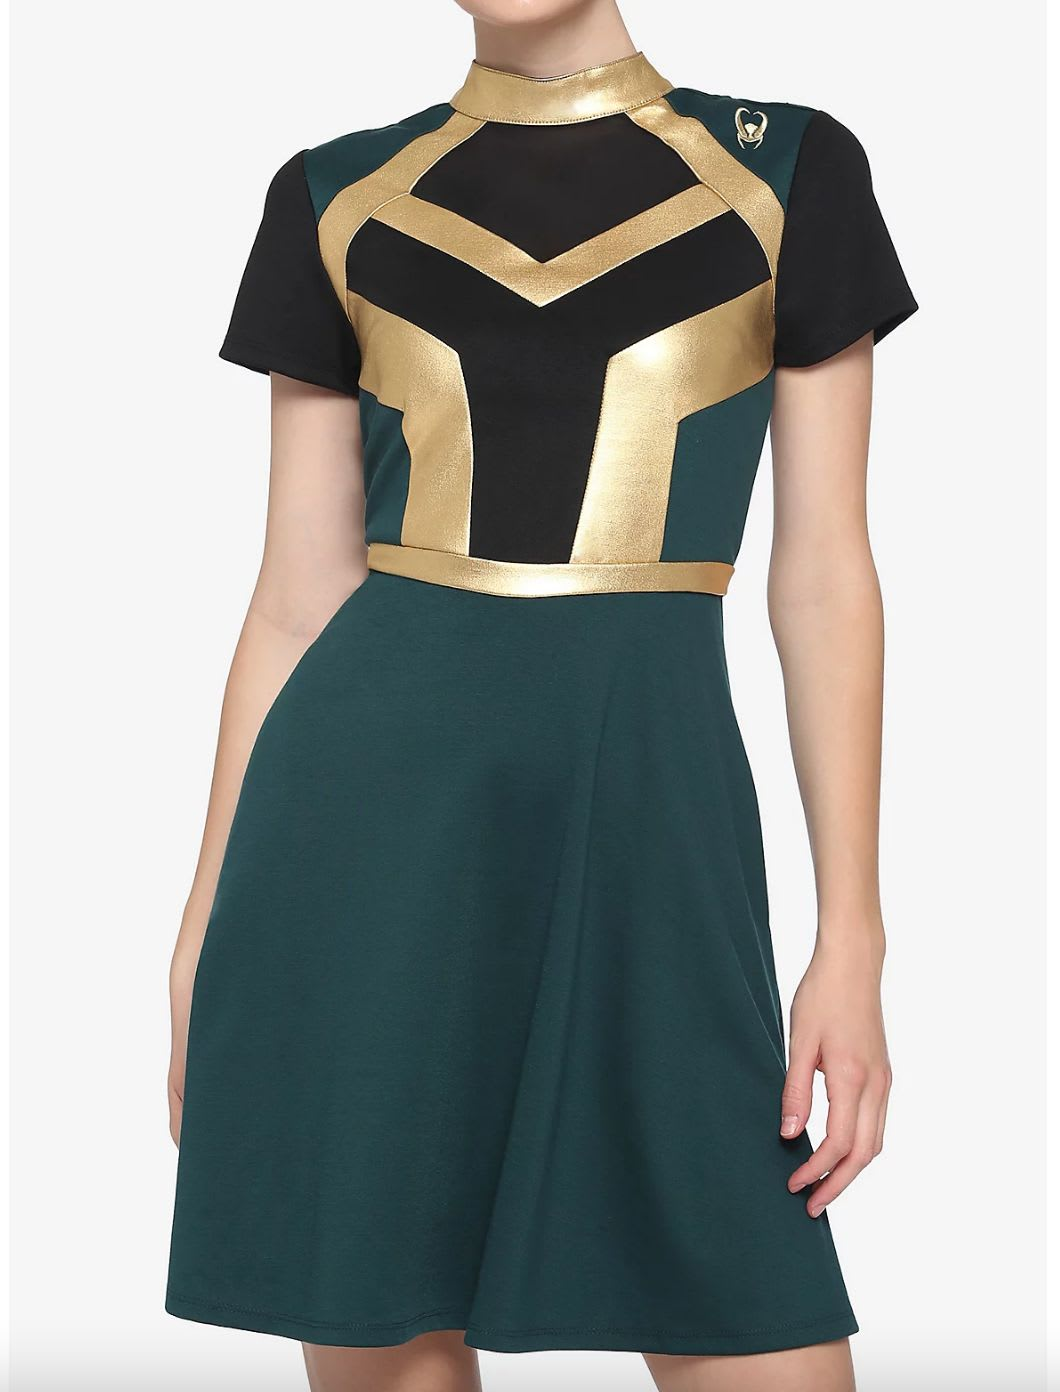 Discover Her Universe's Loki-inspired dress at Hot Topic.